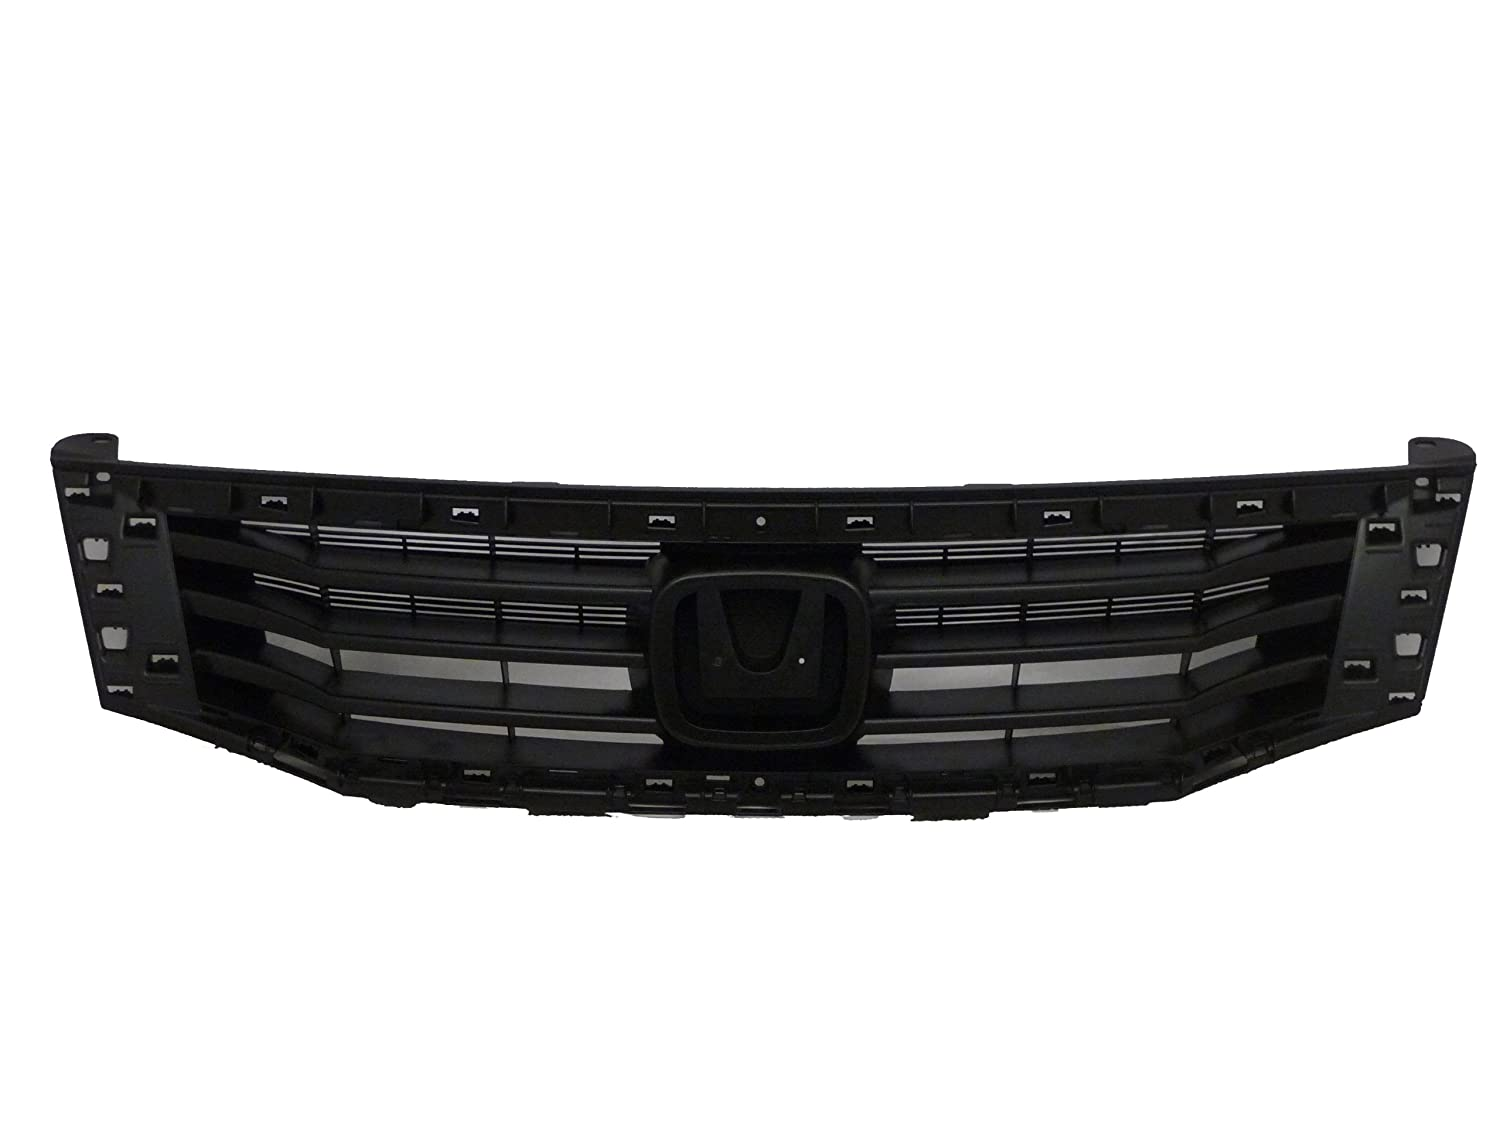 Honda Accord 08-10 Front Grille Car Sedan Aftermarket Replacement